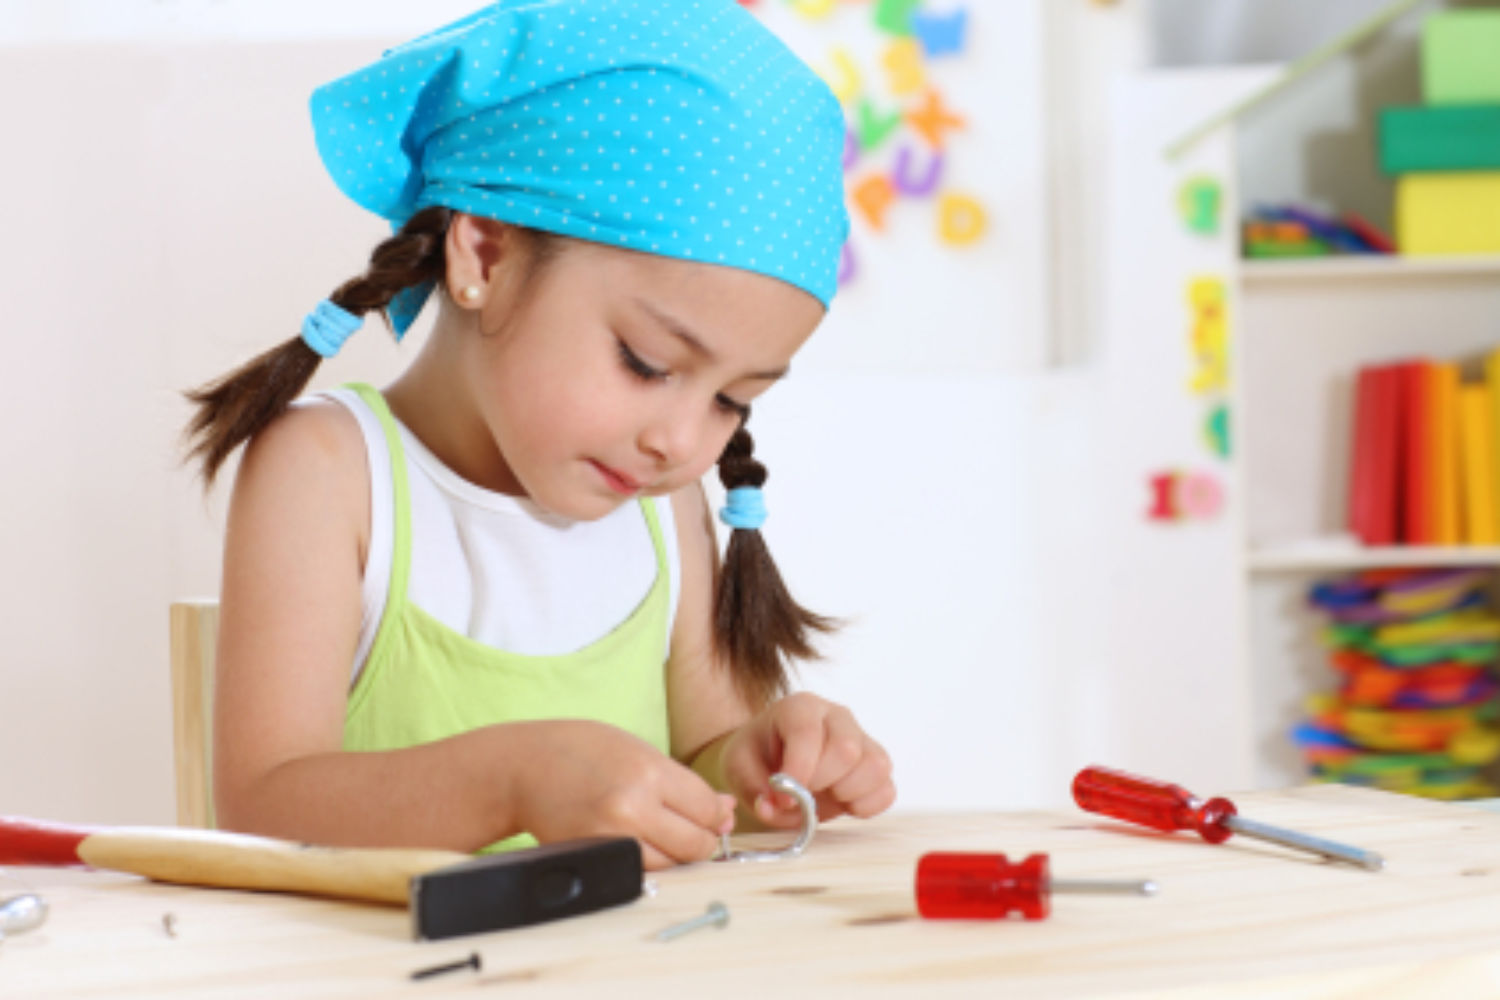 Beyond Discouragement - Creativity: How to Raise a Creative Child